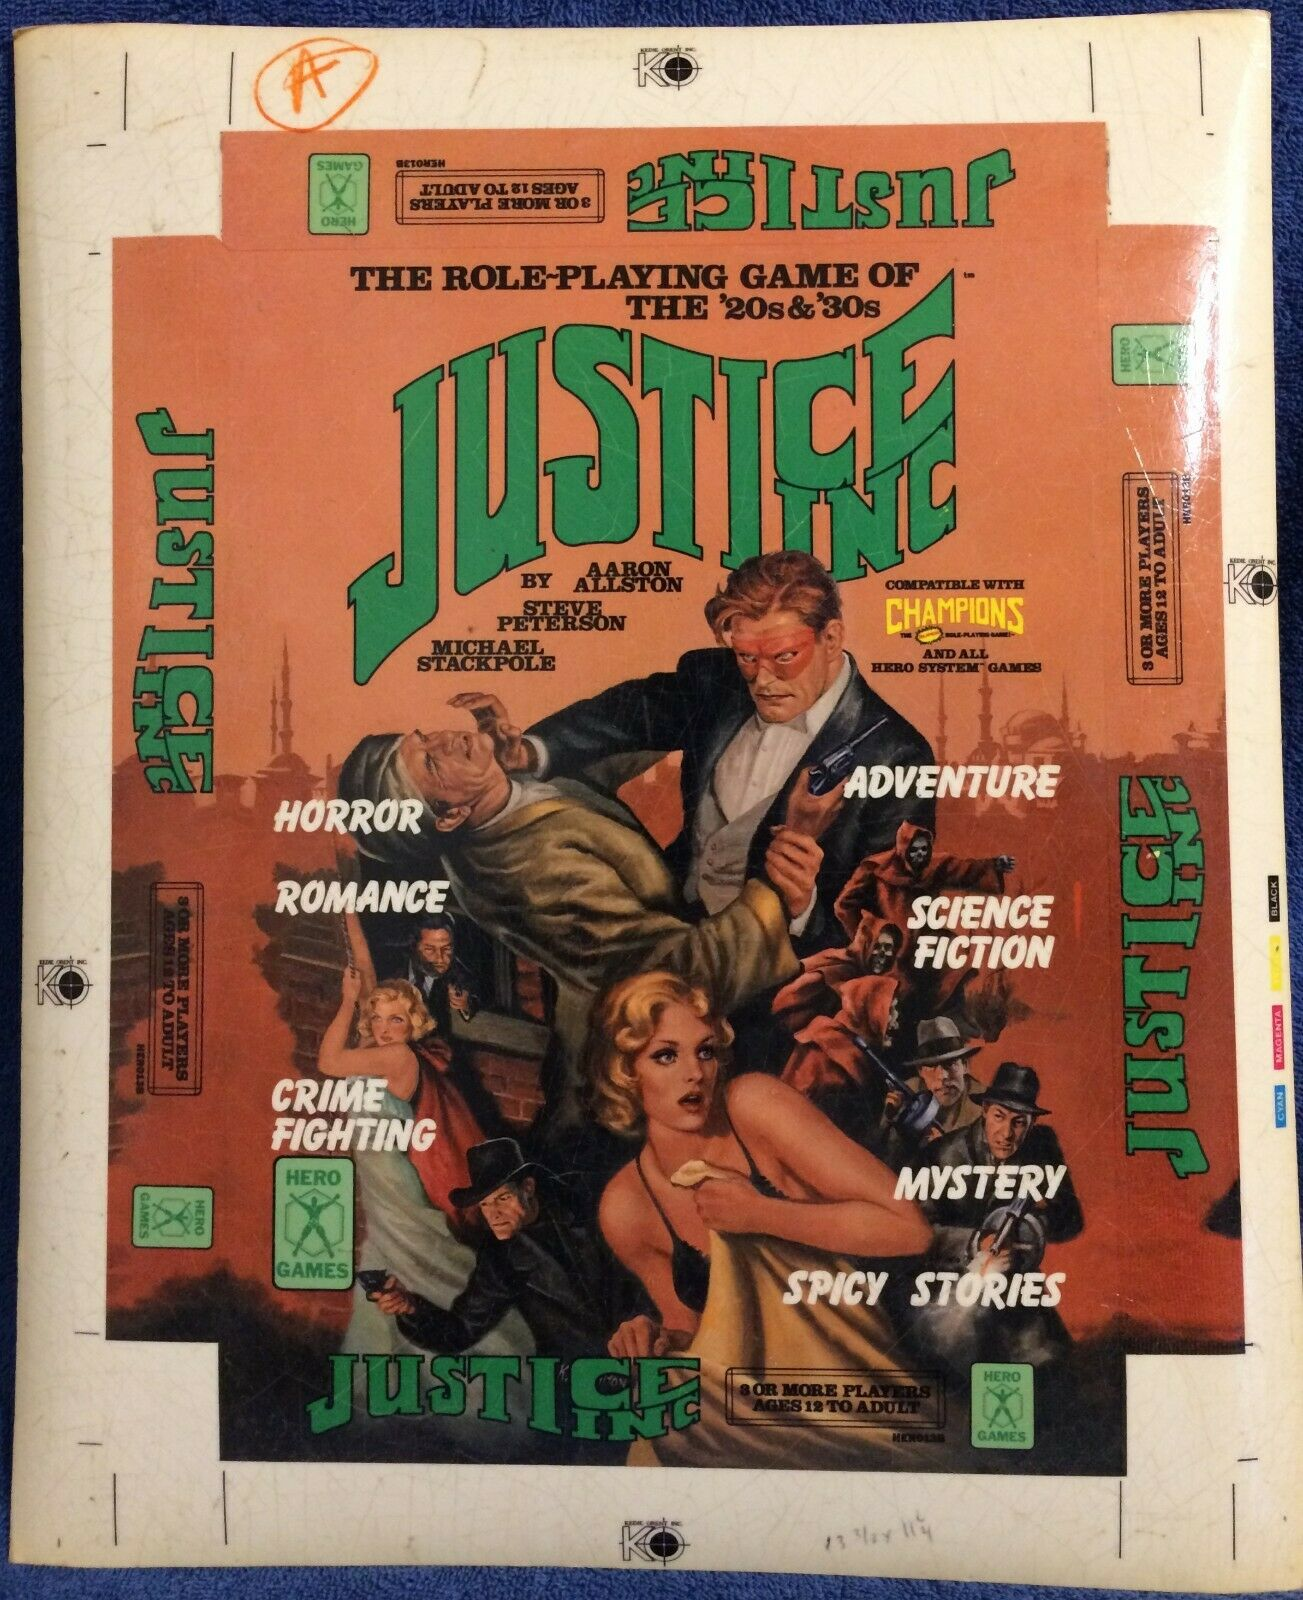 JUSTICE INC. - Hero Games System Promotional Material - Box Art Proof  - $15.99